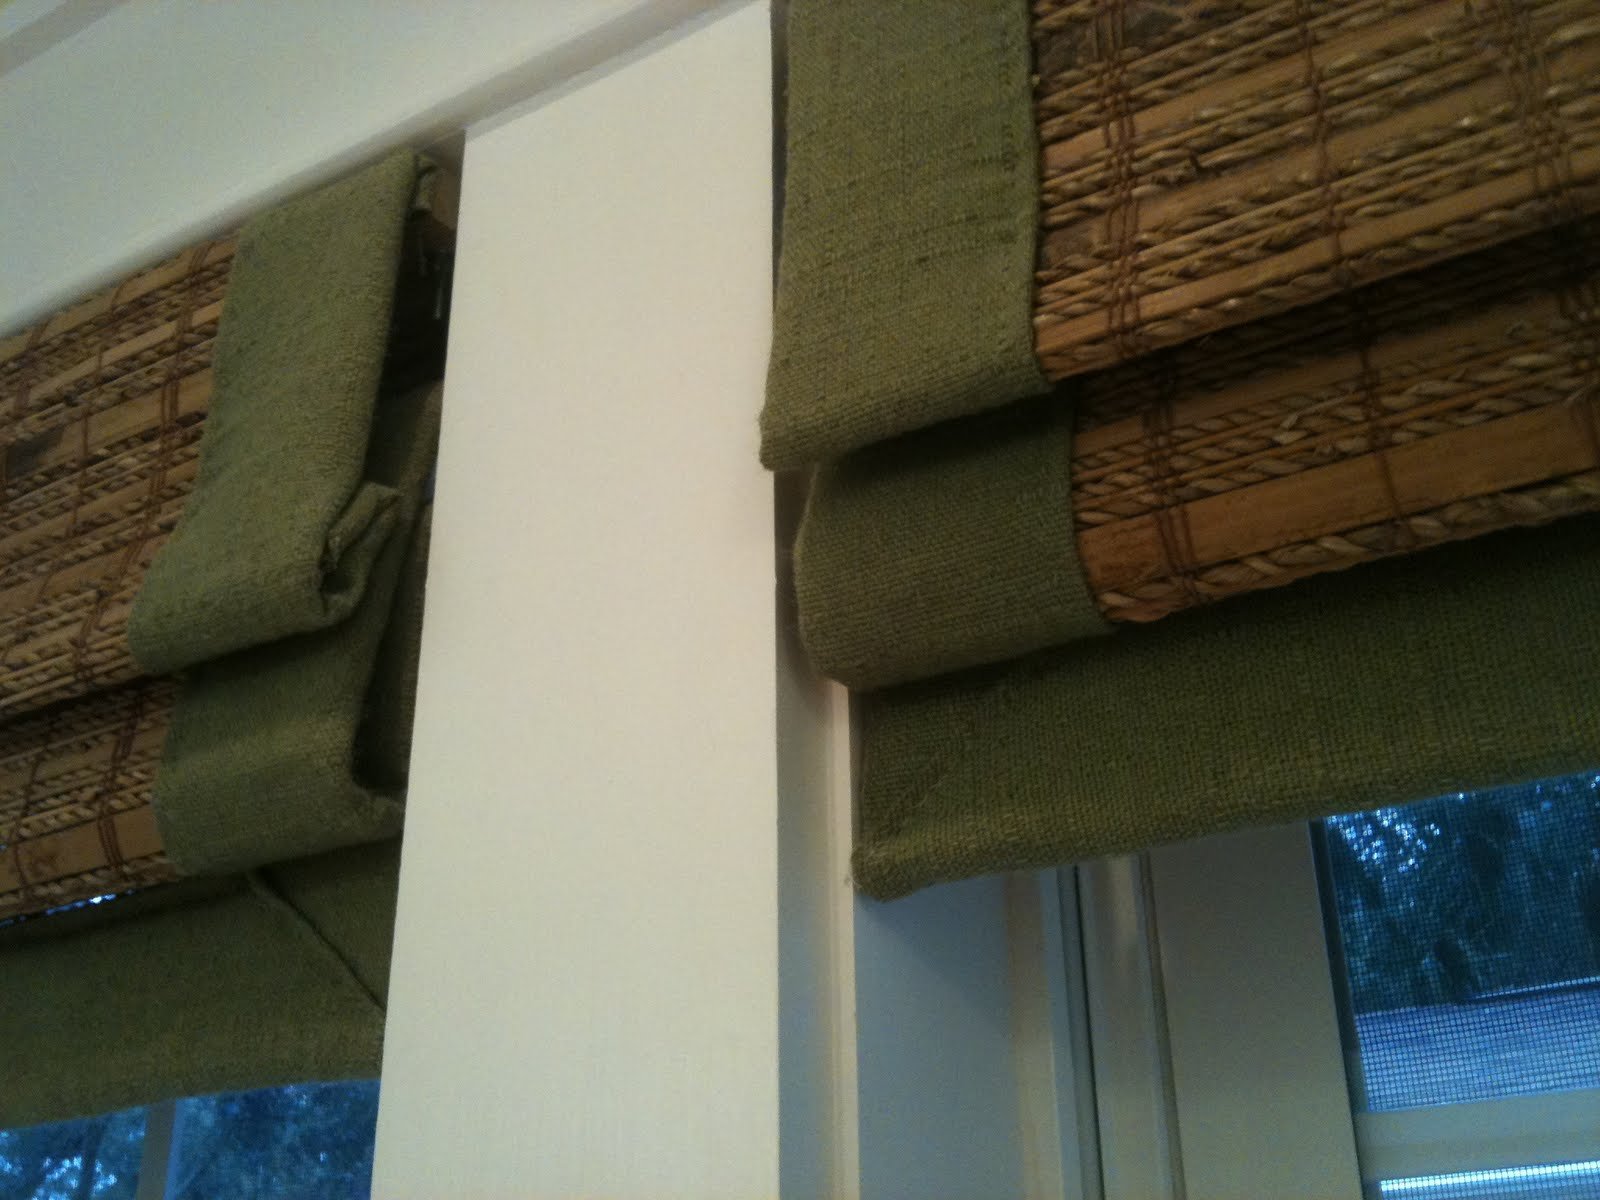 Blinds Blog Do It Yourself Blinds Inside Or Outside Mount